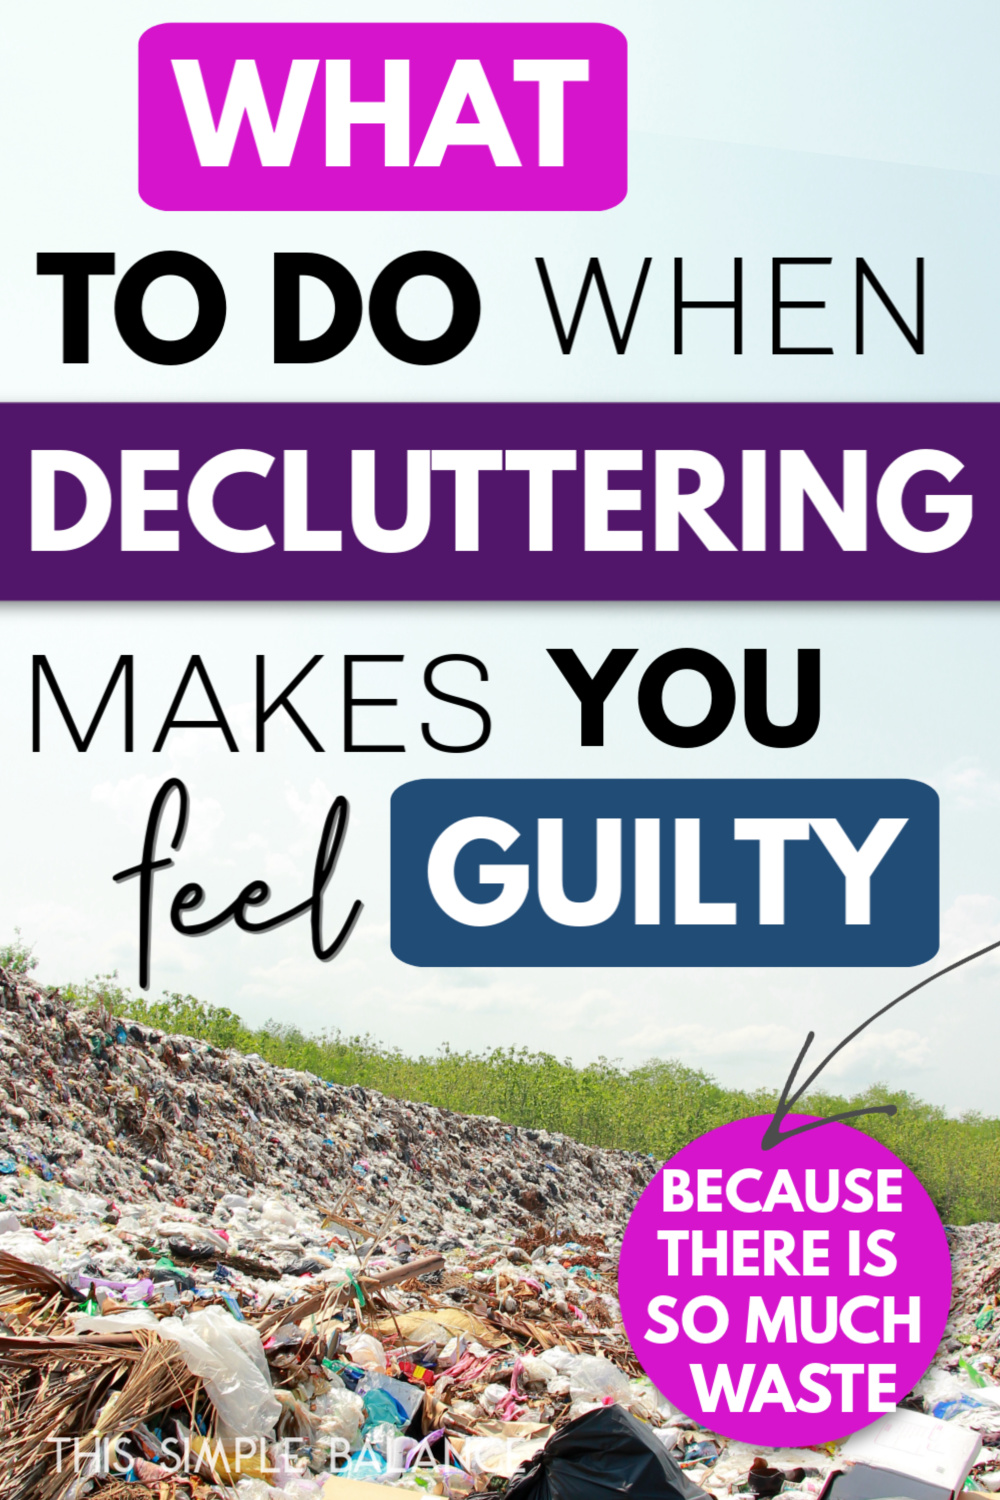 clutter in a landfill